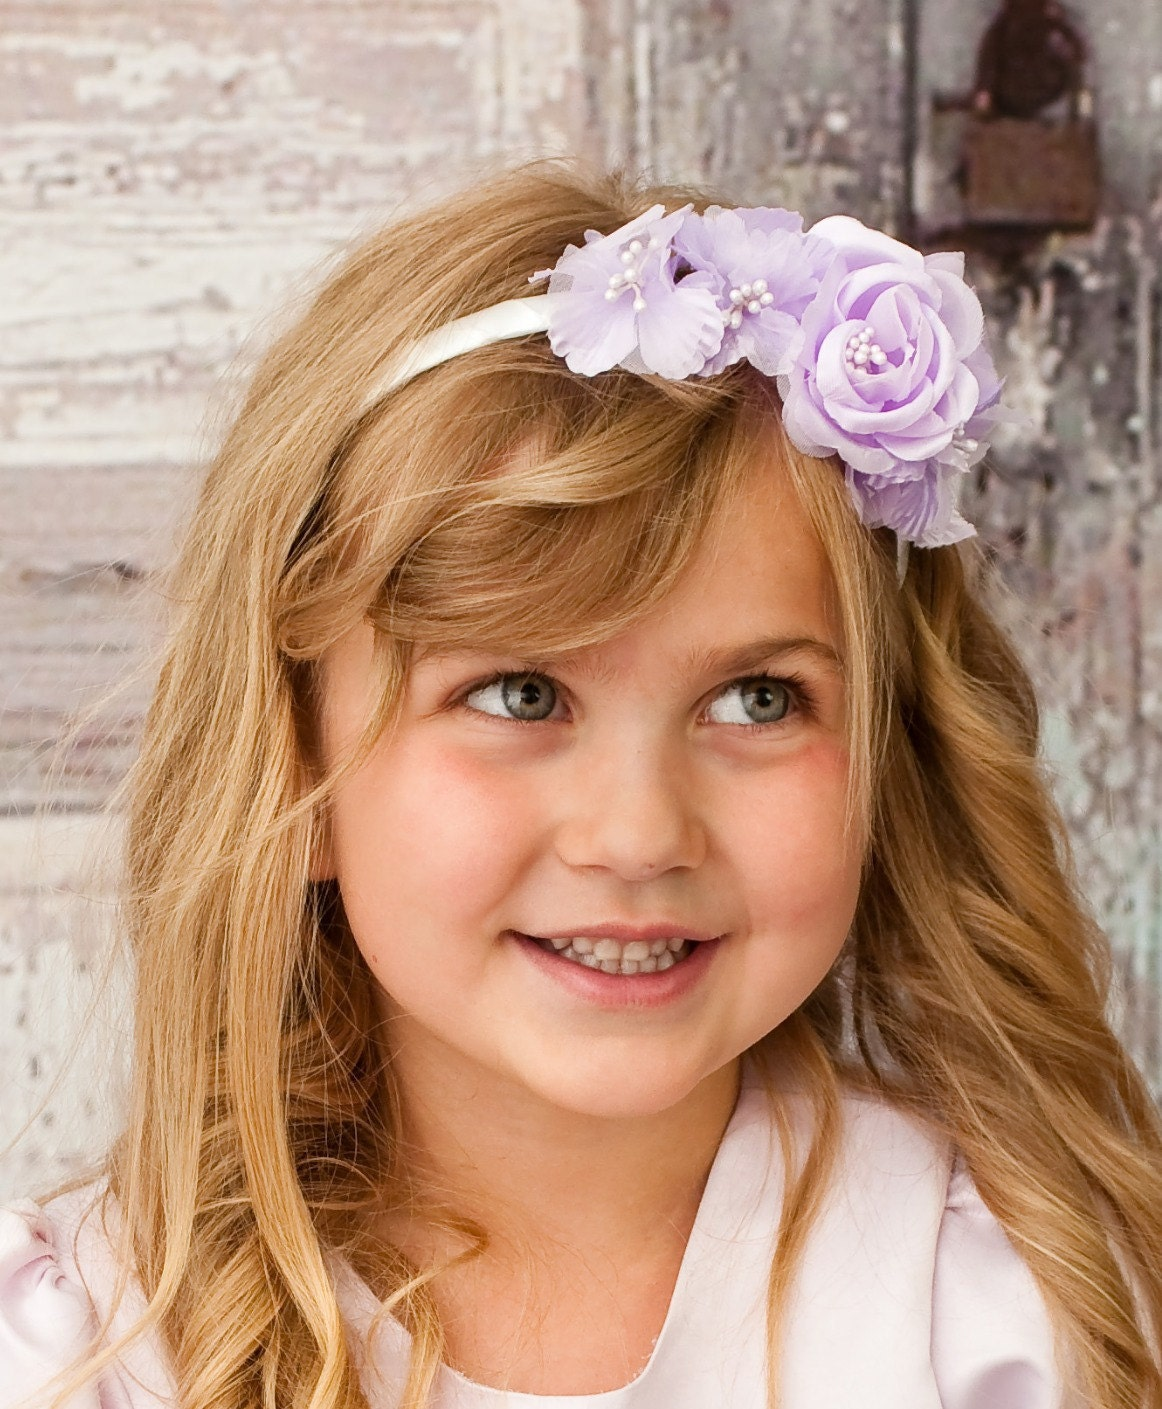 Little Girls' Headbands. Showing 40 of results that match your query. Search Product Result. Product - Girl Party Headdress Decorative Flower Hairband Kids Girls Headbands Headwear. Product Image. Price $ 4. Product Title.